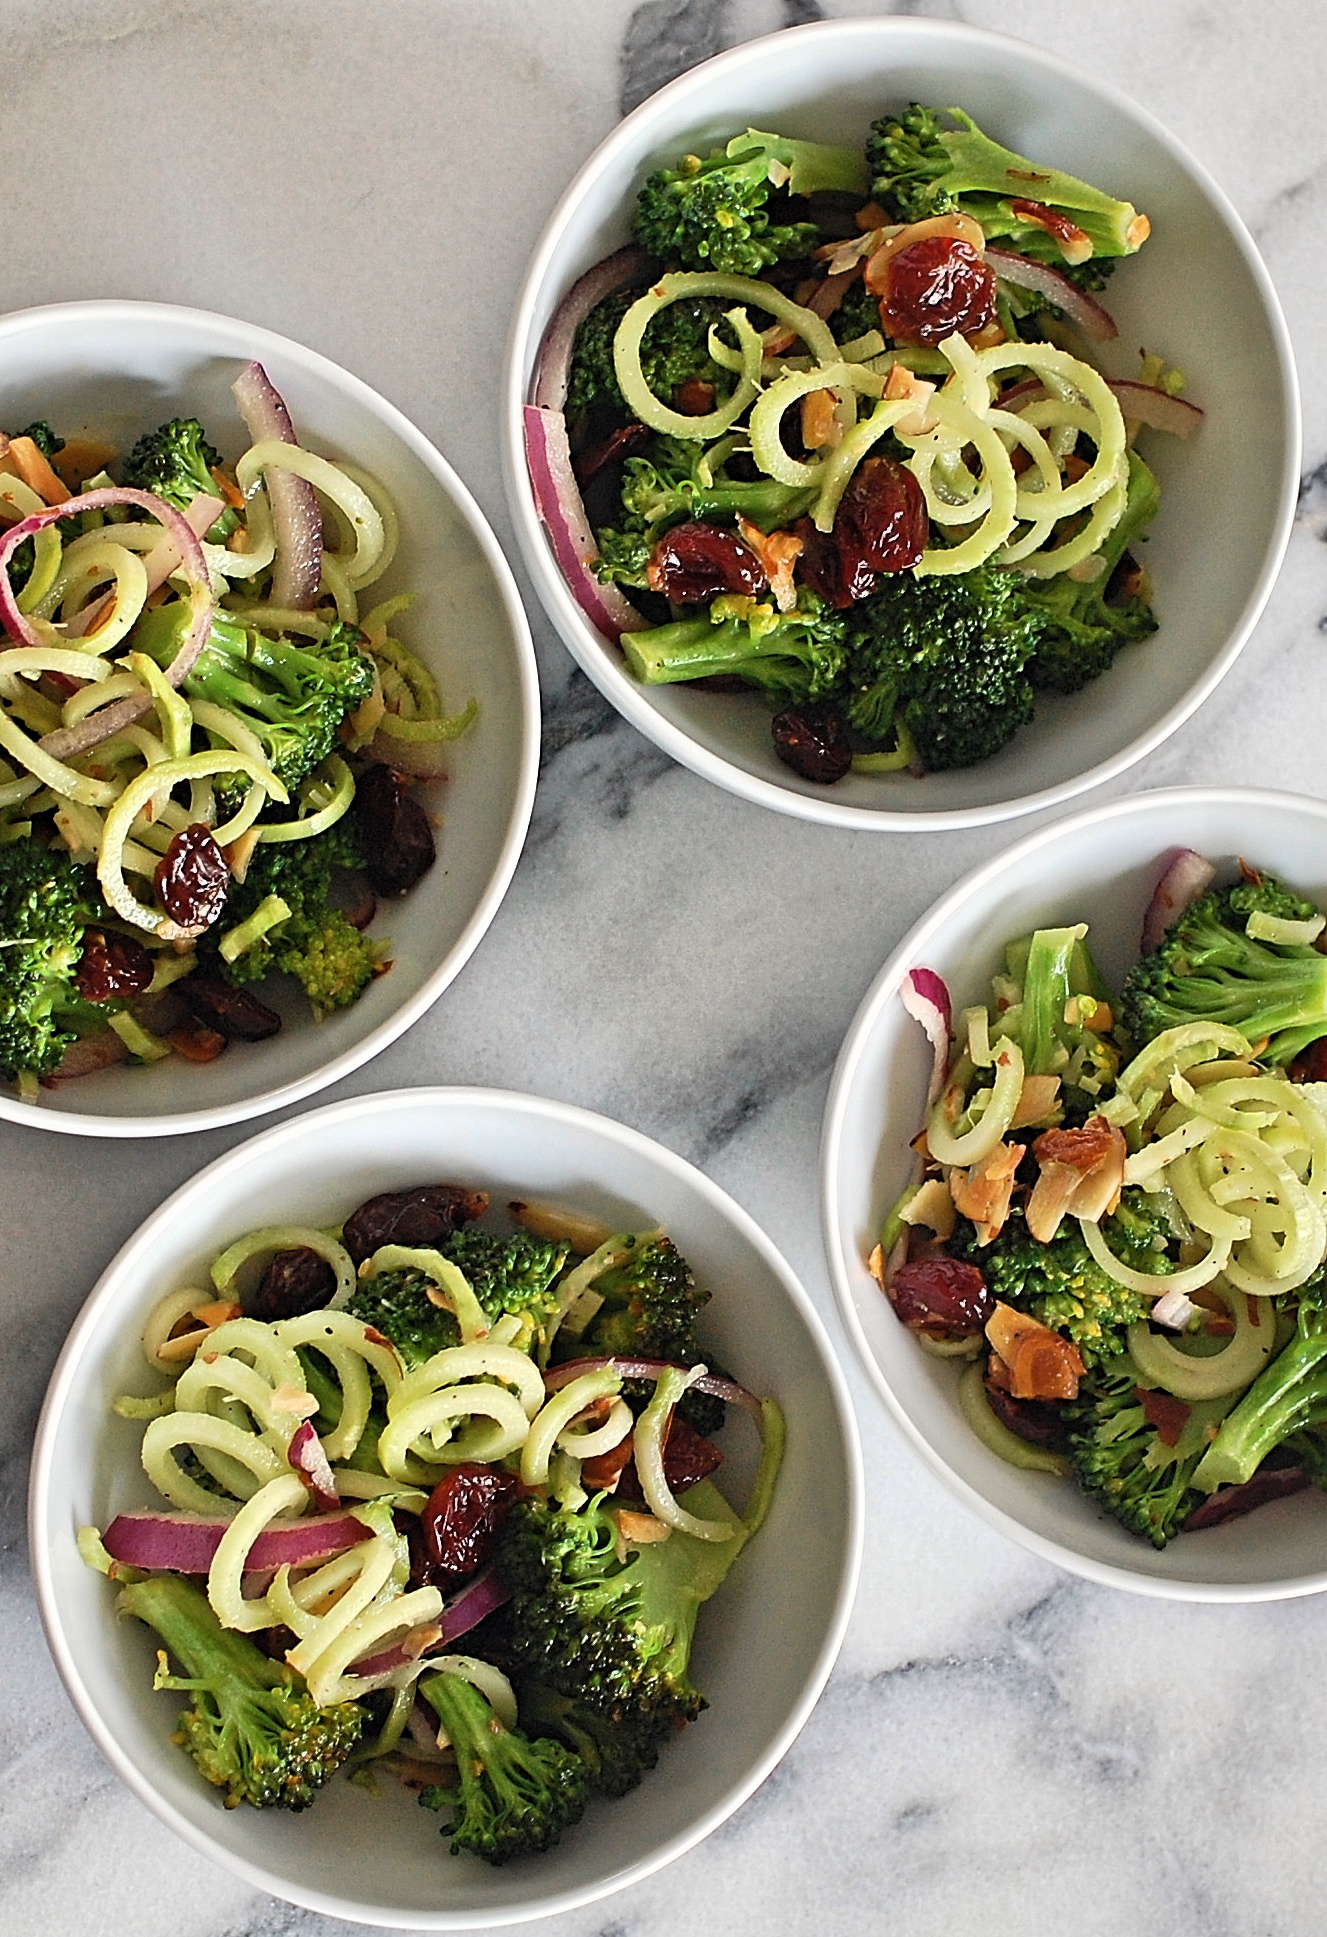 Clean Broccoli Spirals Salad